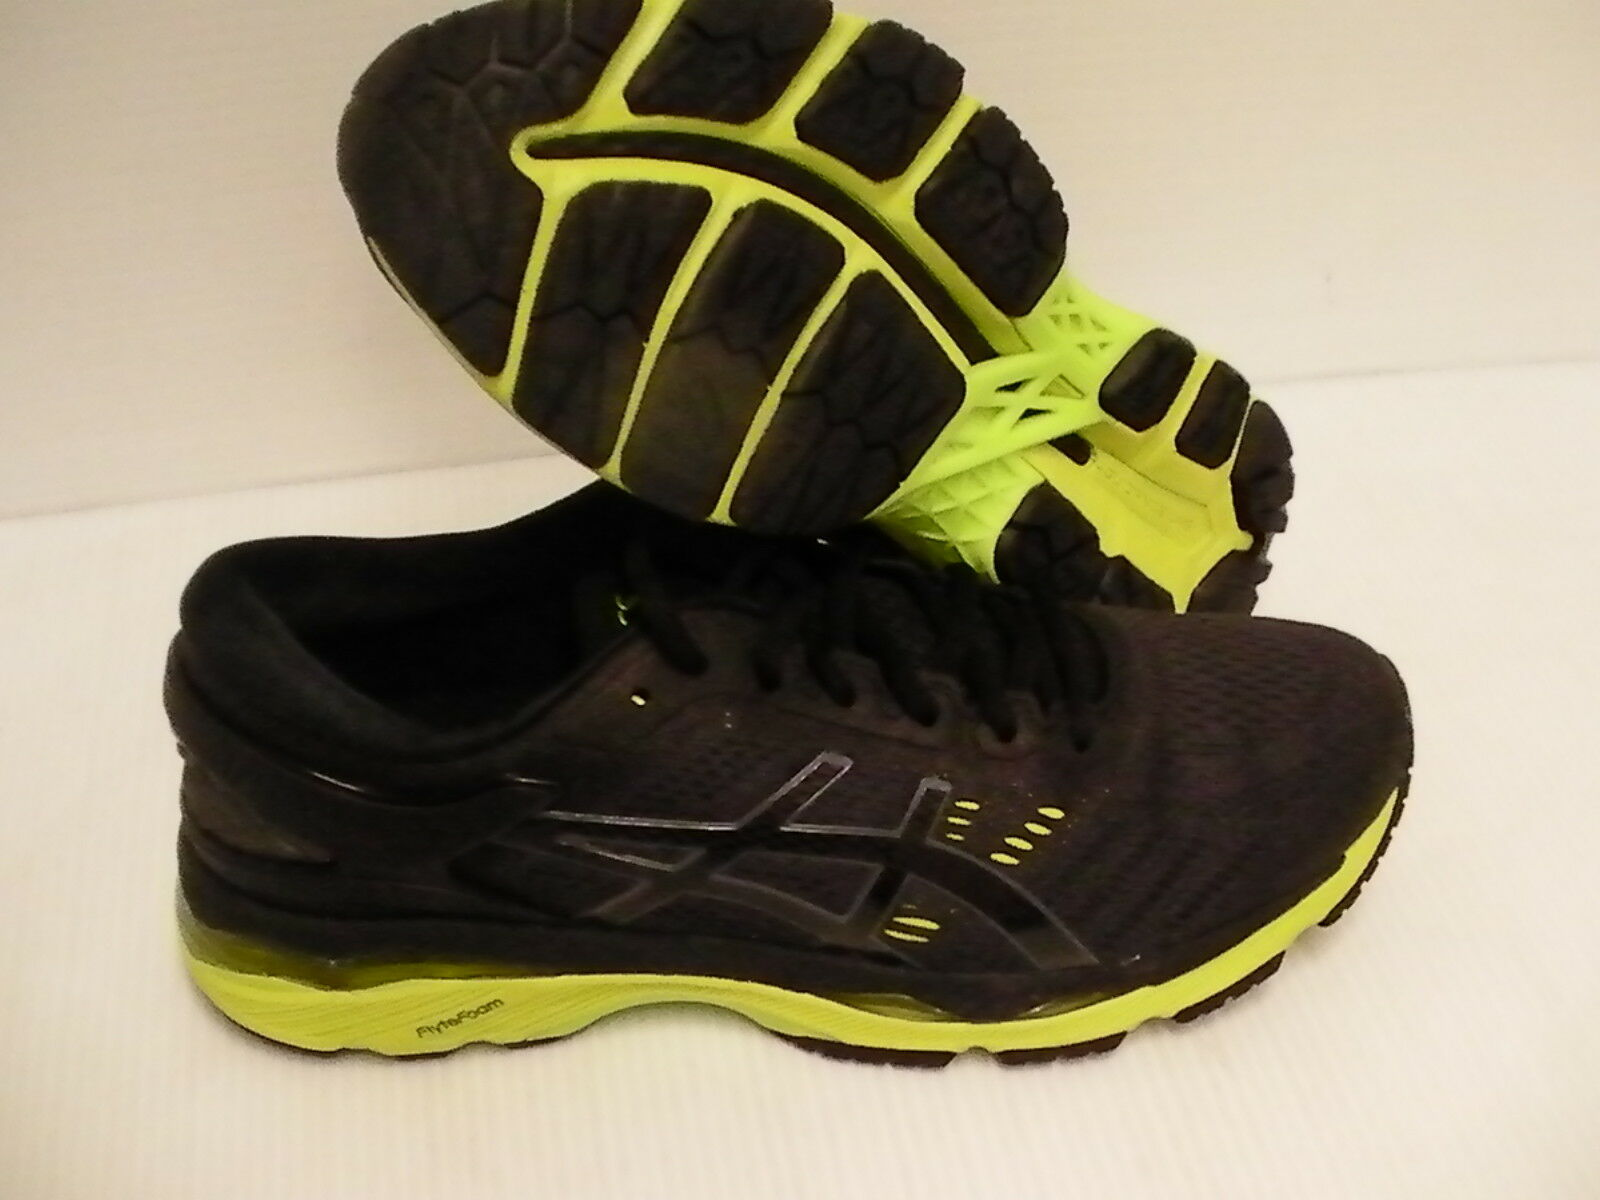 Asics Homme shoes Course Gel Kayano 24 Black green Gecko